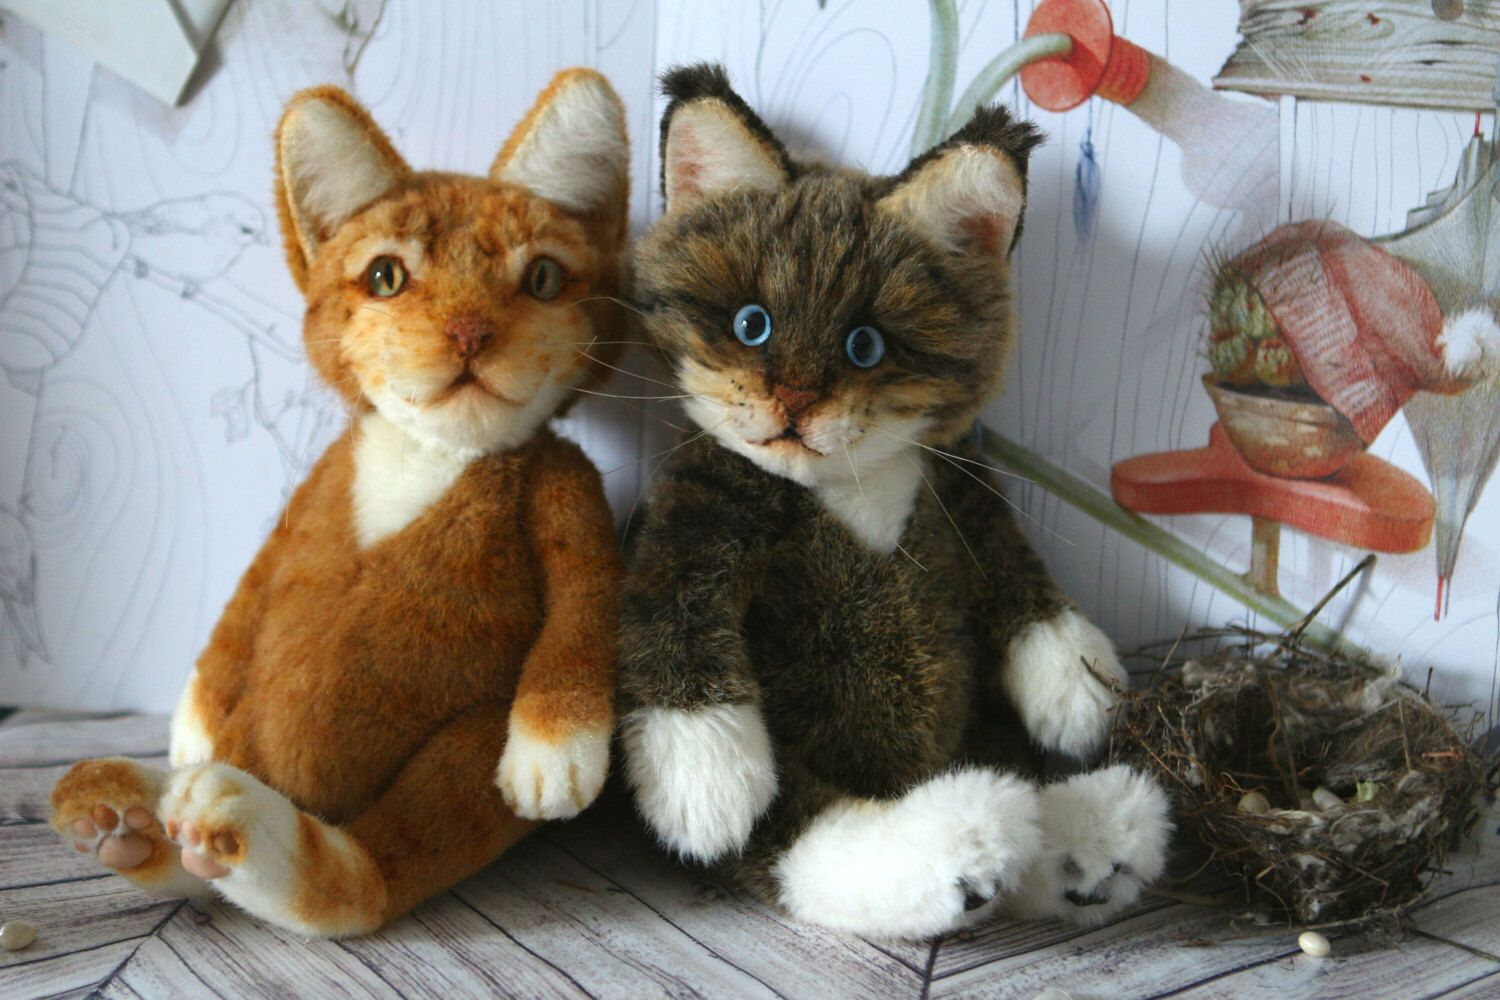 Cat Portrait Ginger Kitten 12 In Teddy Cat For Your Pets Artist Teddy Bears Pet Portraits Whimsical Animalistic Gifts Valentine S Day In 2020 Ginger Kitten Your Pet Cute Little Kittens